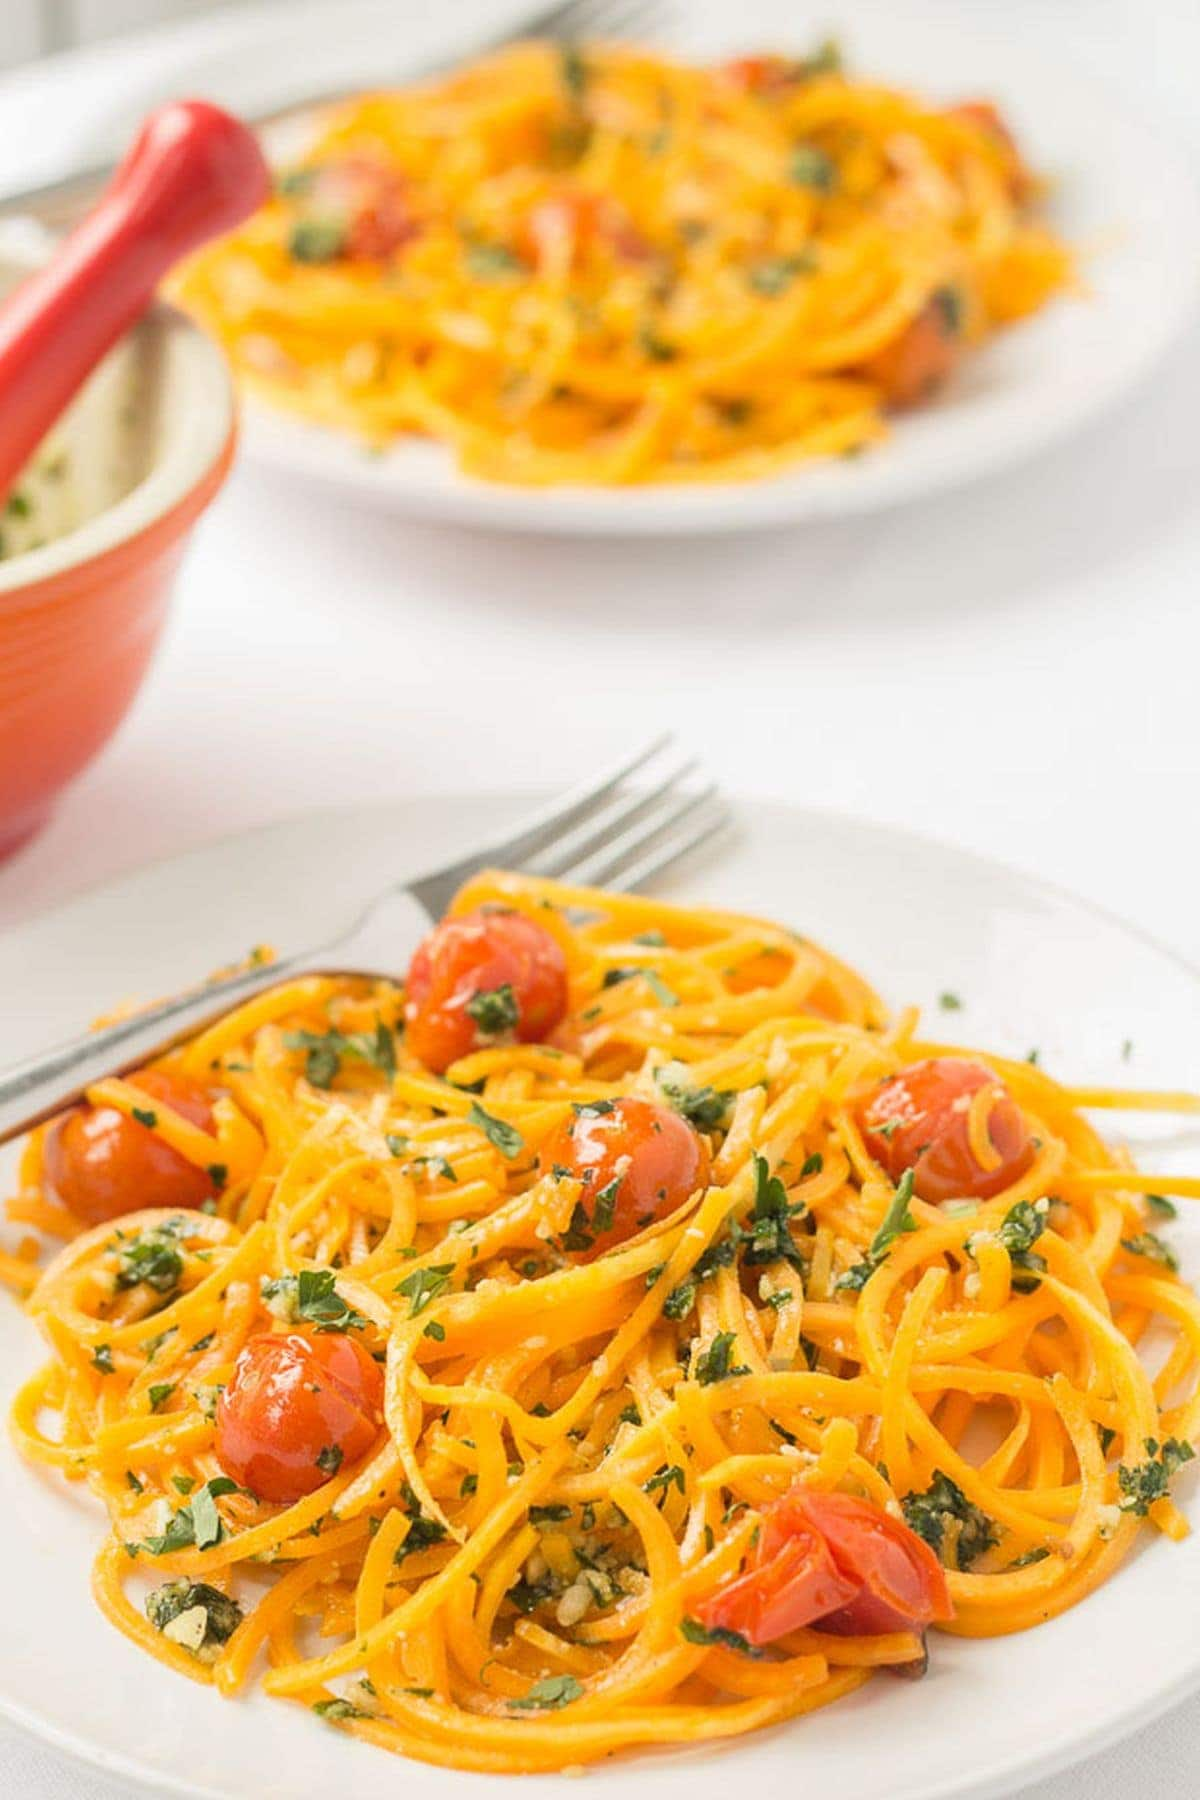 Two plates of butternut squash noodles with spring pesto and roasted tomatoes one in front of the other with forks on. A pestle and mortar in between.